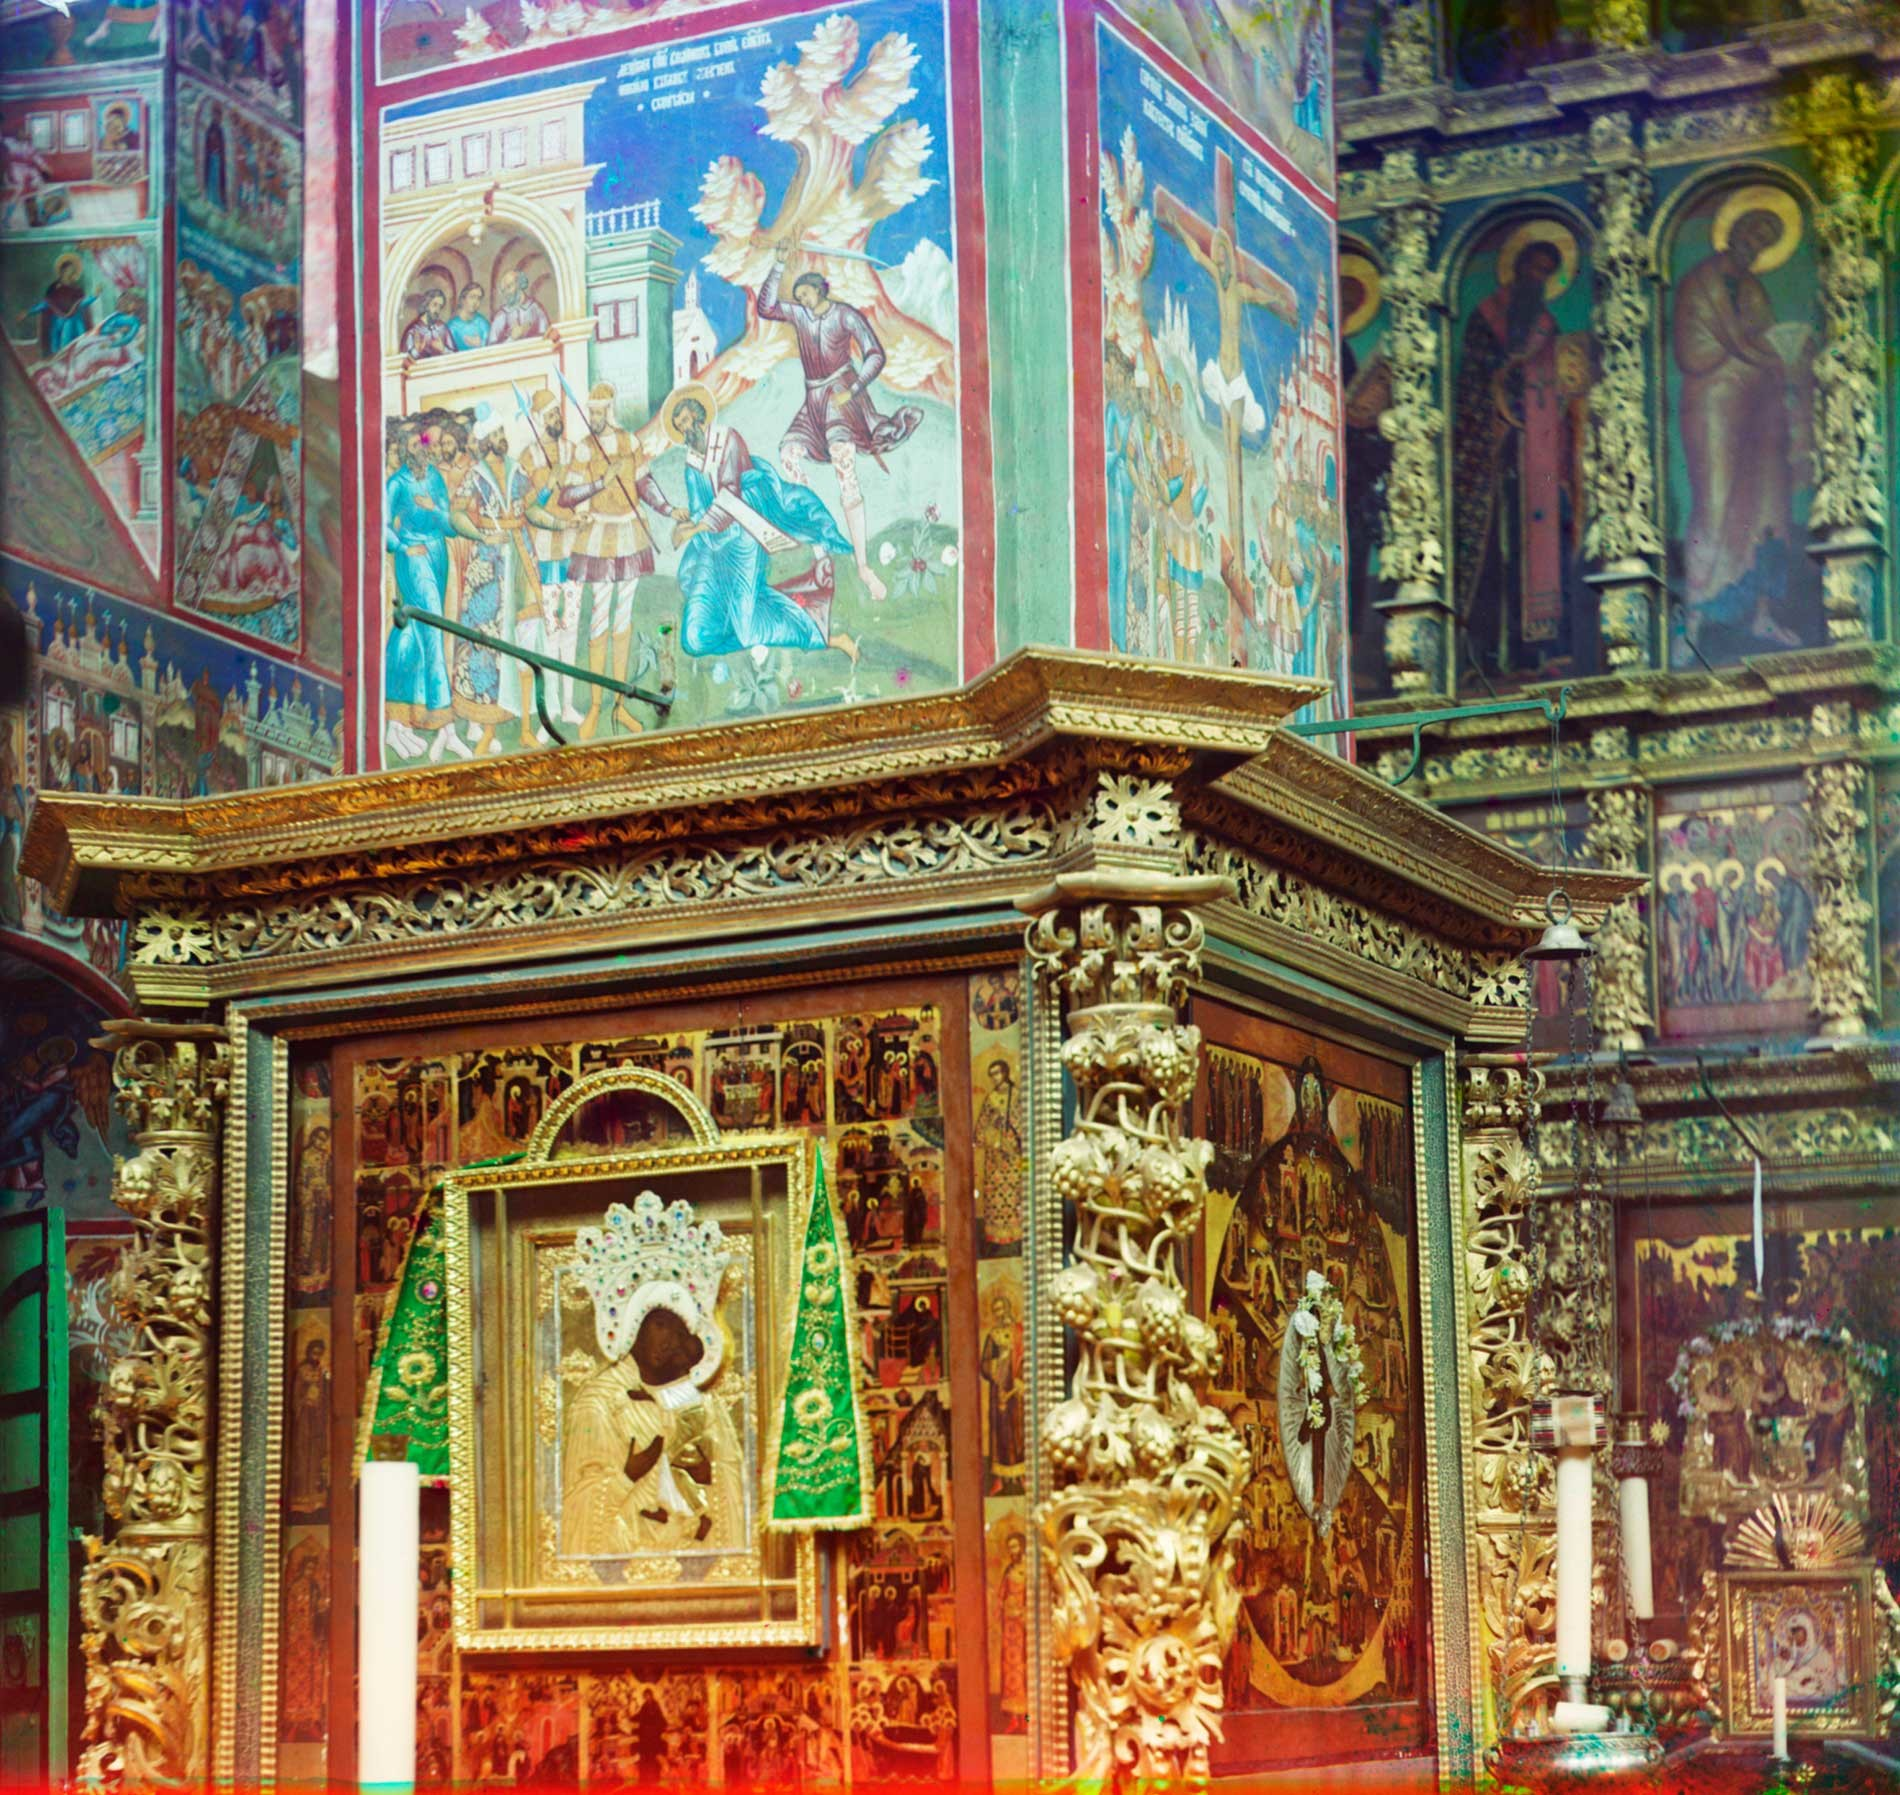 Church of St. John Chrysostom at Korovniki. Northwest pier. Left: Tolg Icon of the Virgin; fresco: Decapitation of Dionysius the Areopagite. Right fresco: Crucifixion of Apostle Simon the Zealot. Summer 1911.